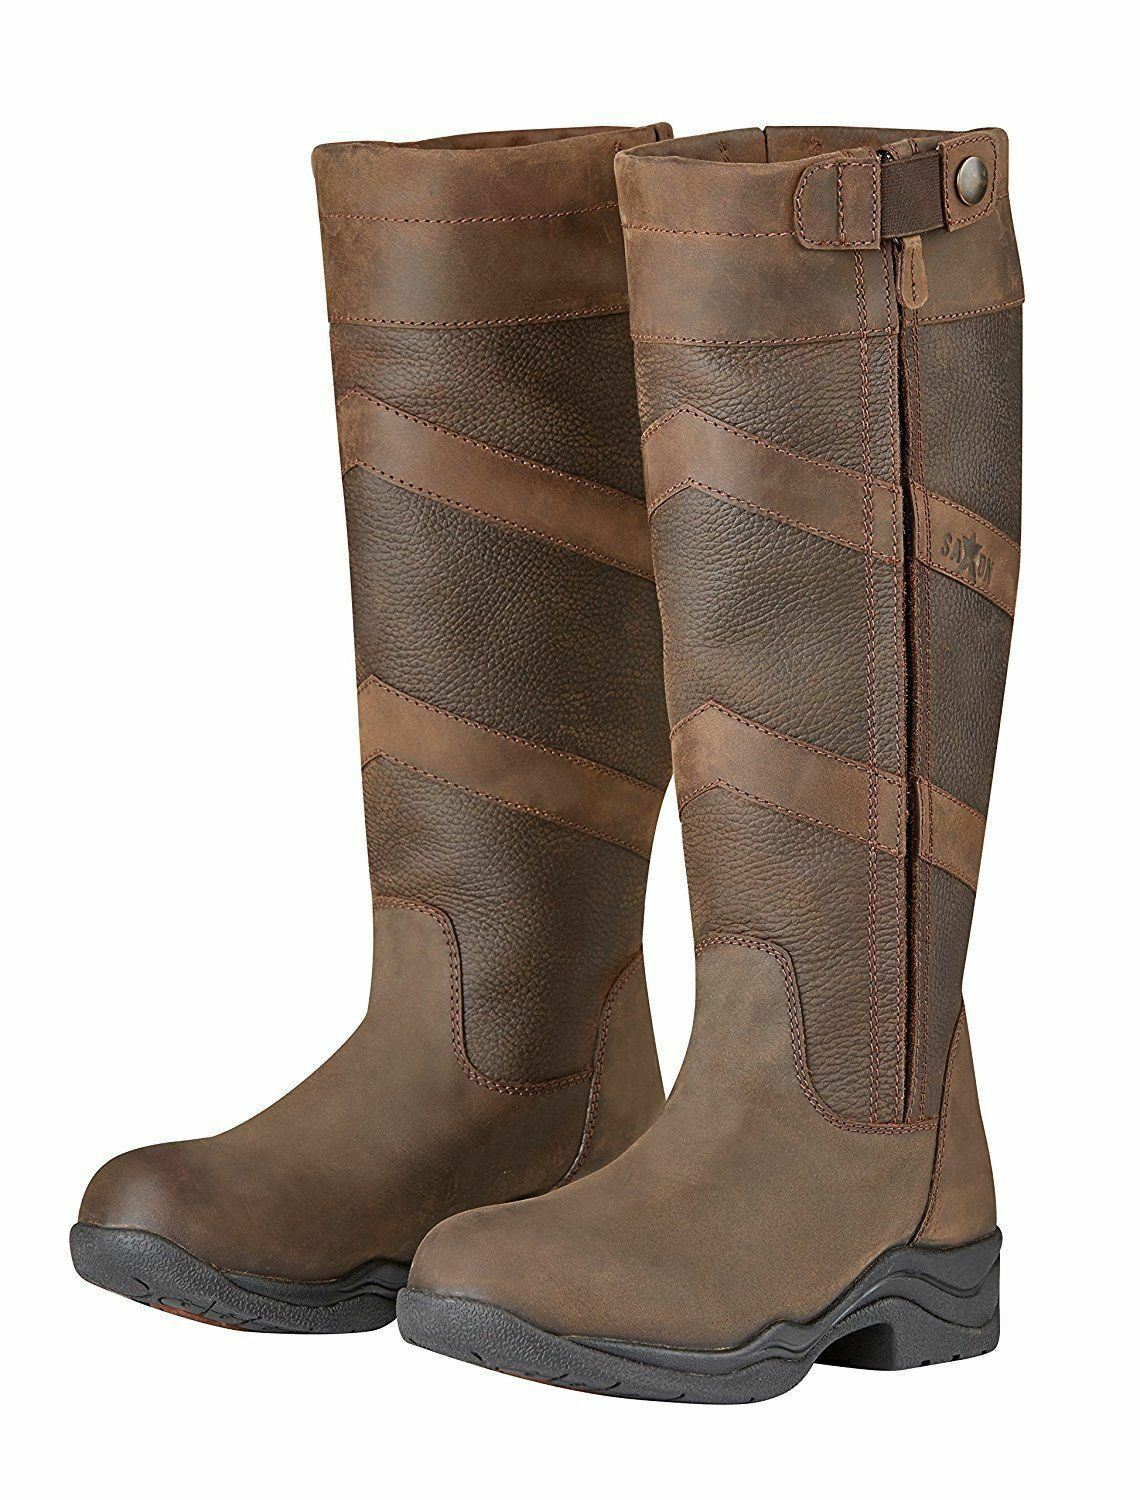 Saxon Lewes Waterproof Leather Country Boots with Full Length Zip